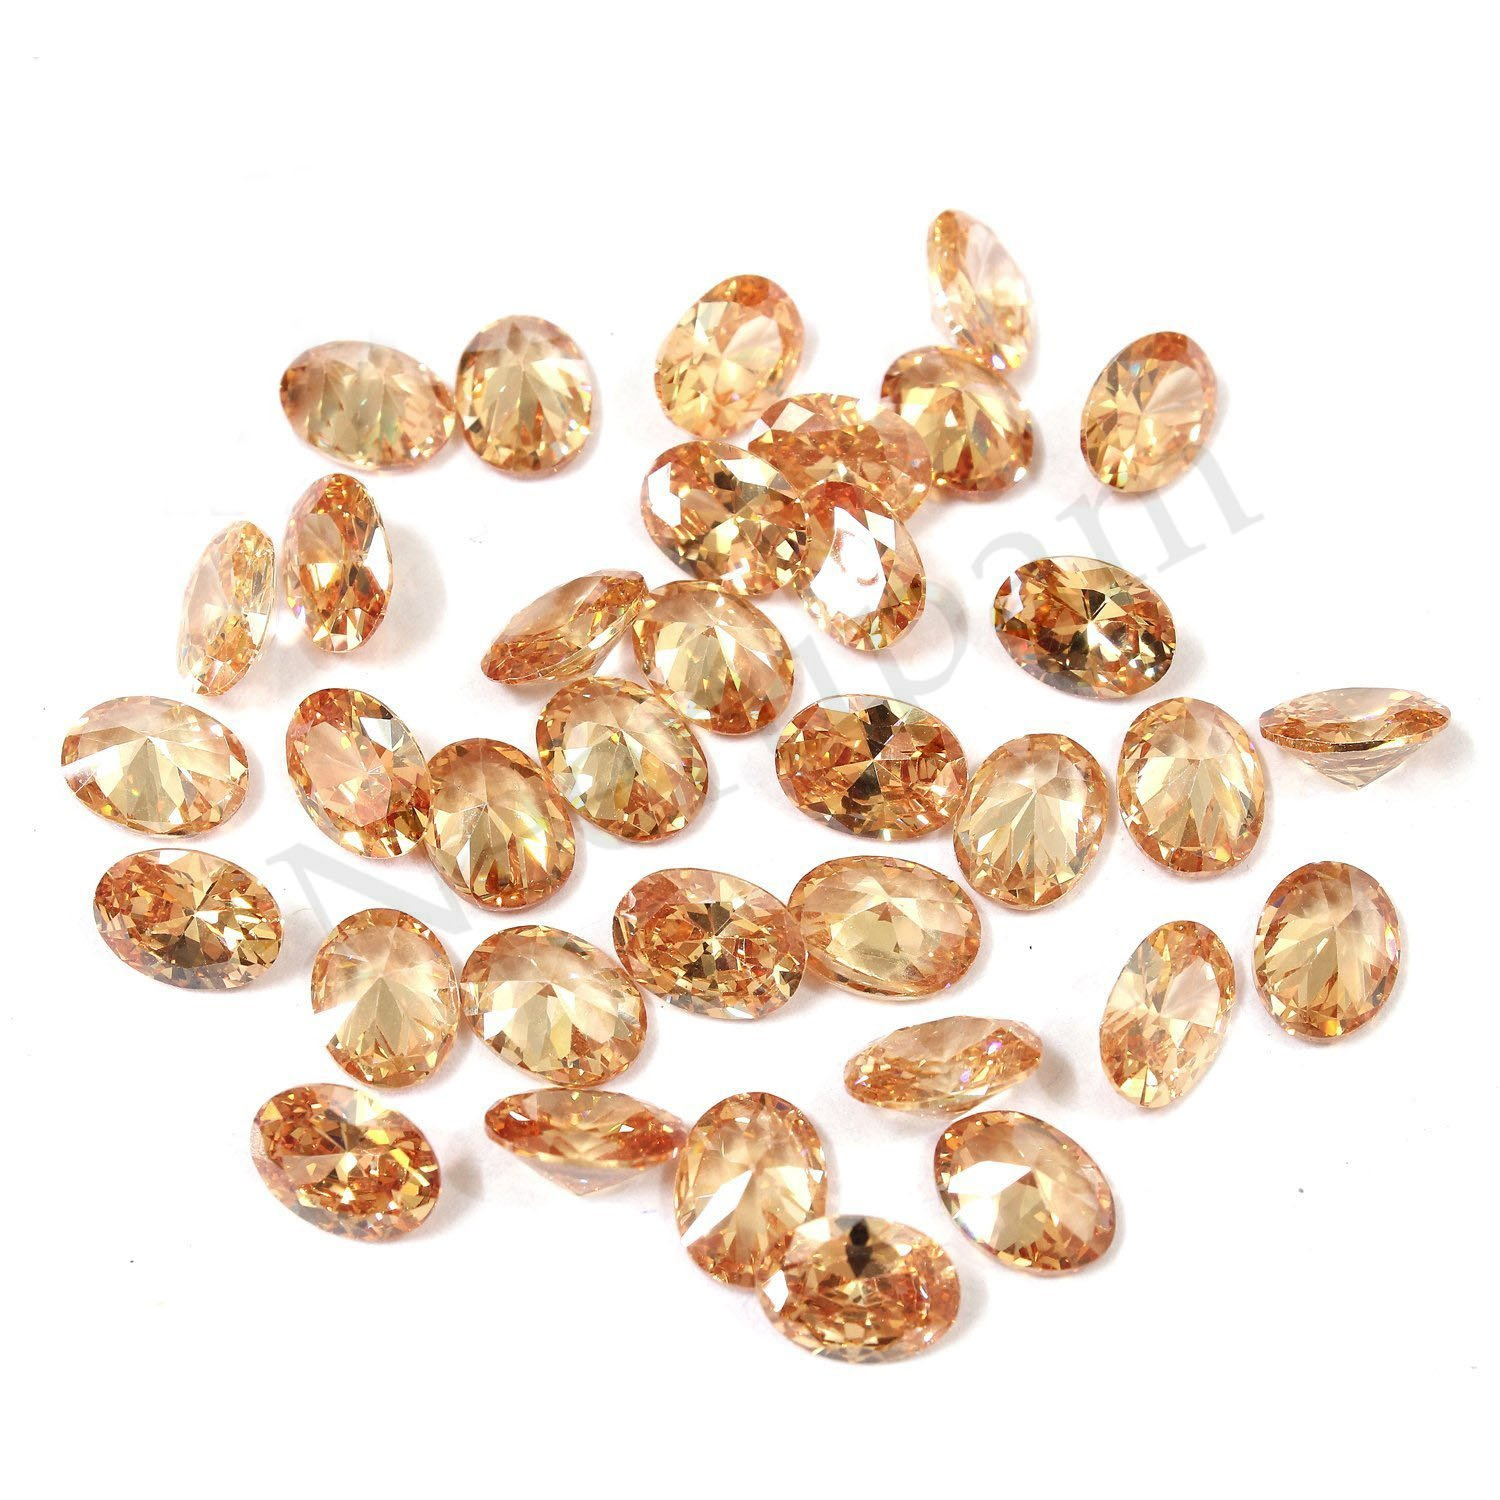 Neerupam collection Champagne Colour Cubic Zirconia AAA Quality Diamond Cut Oval Shape loose gemstone